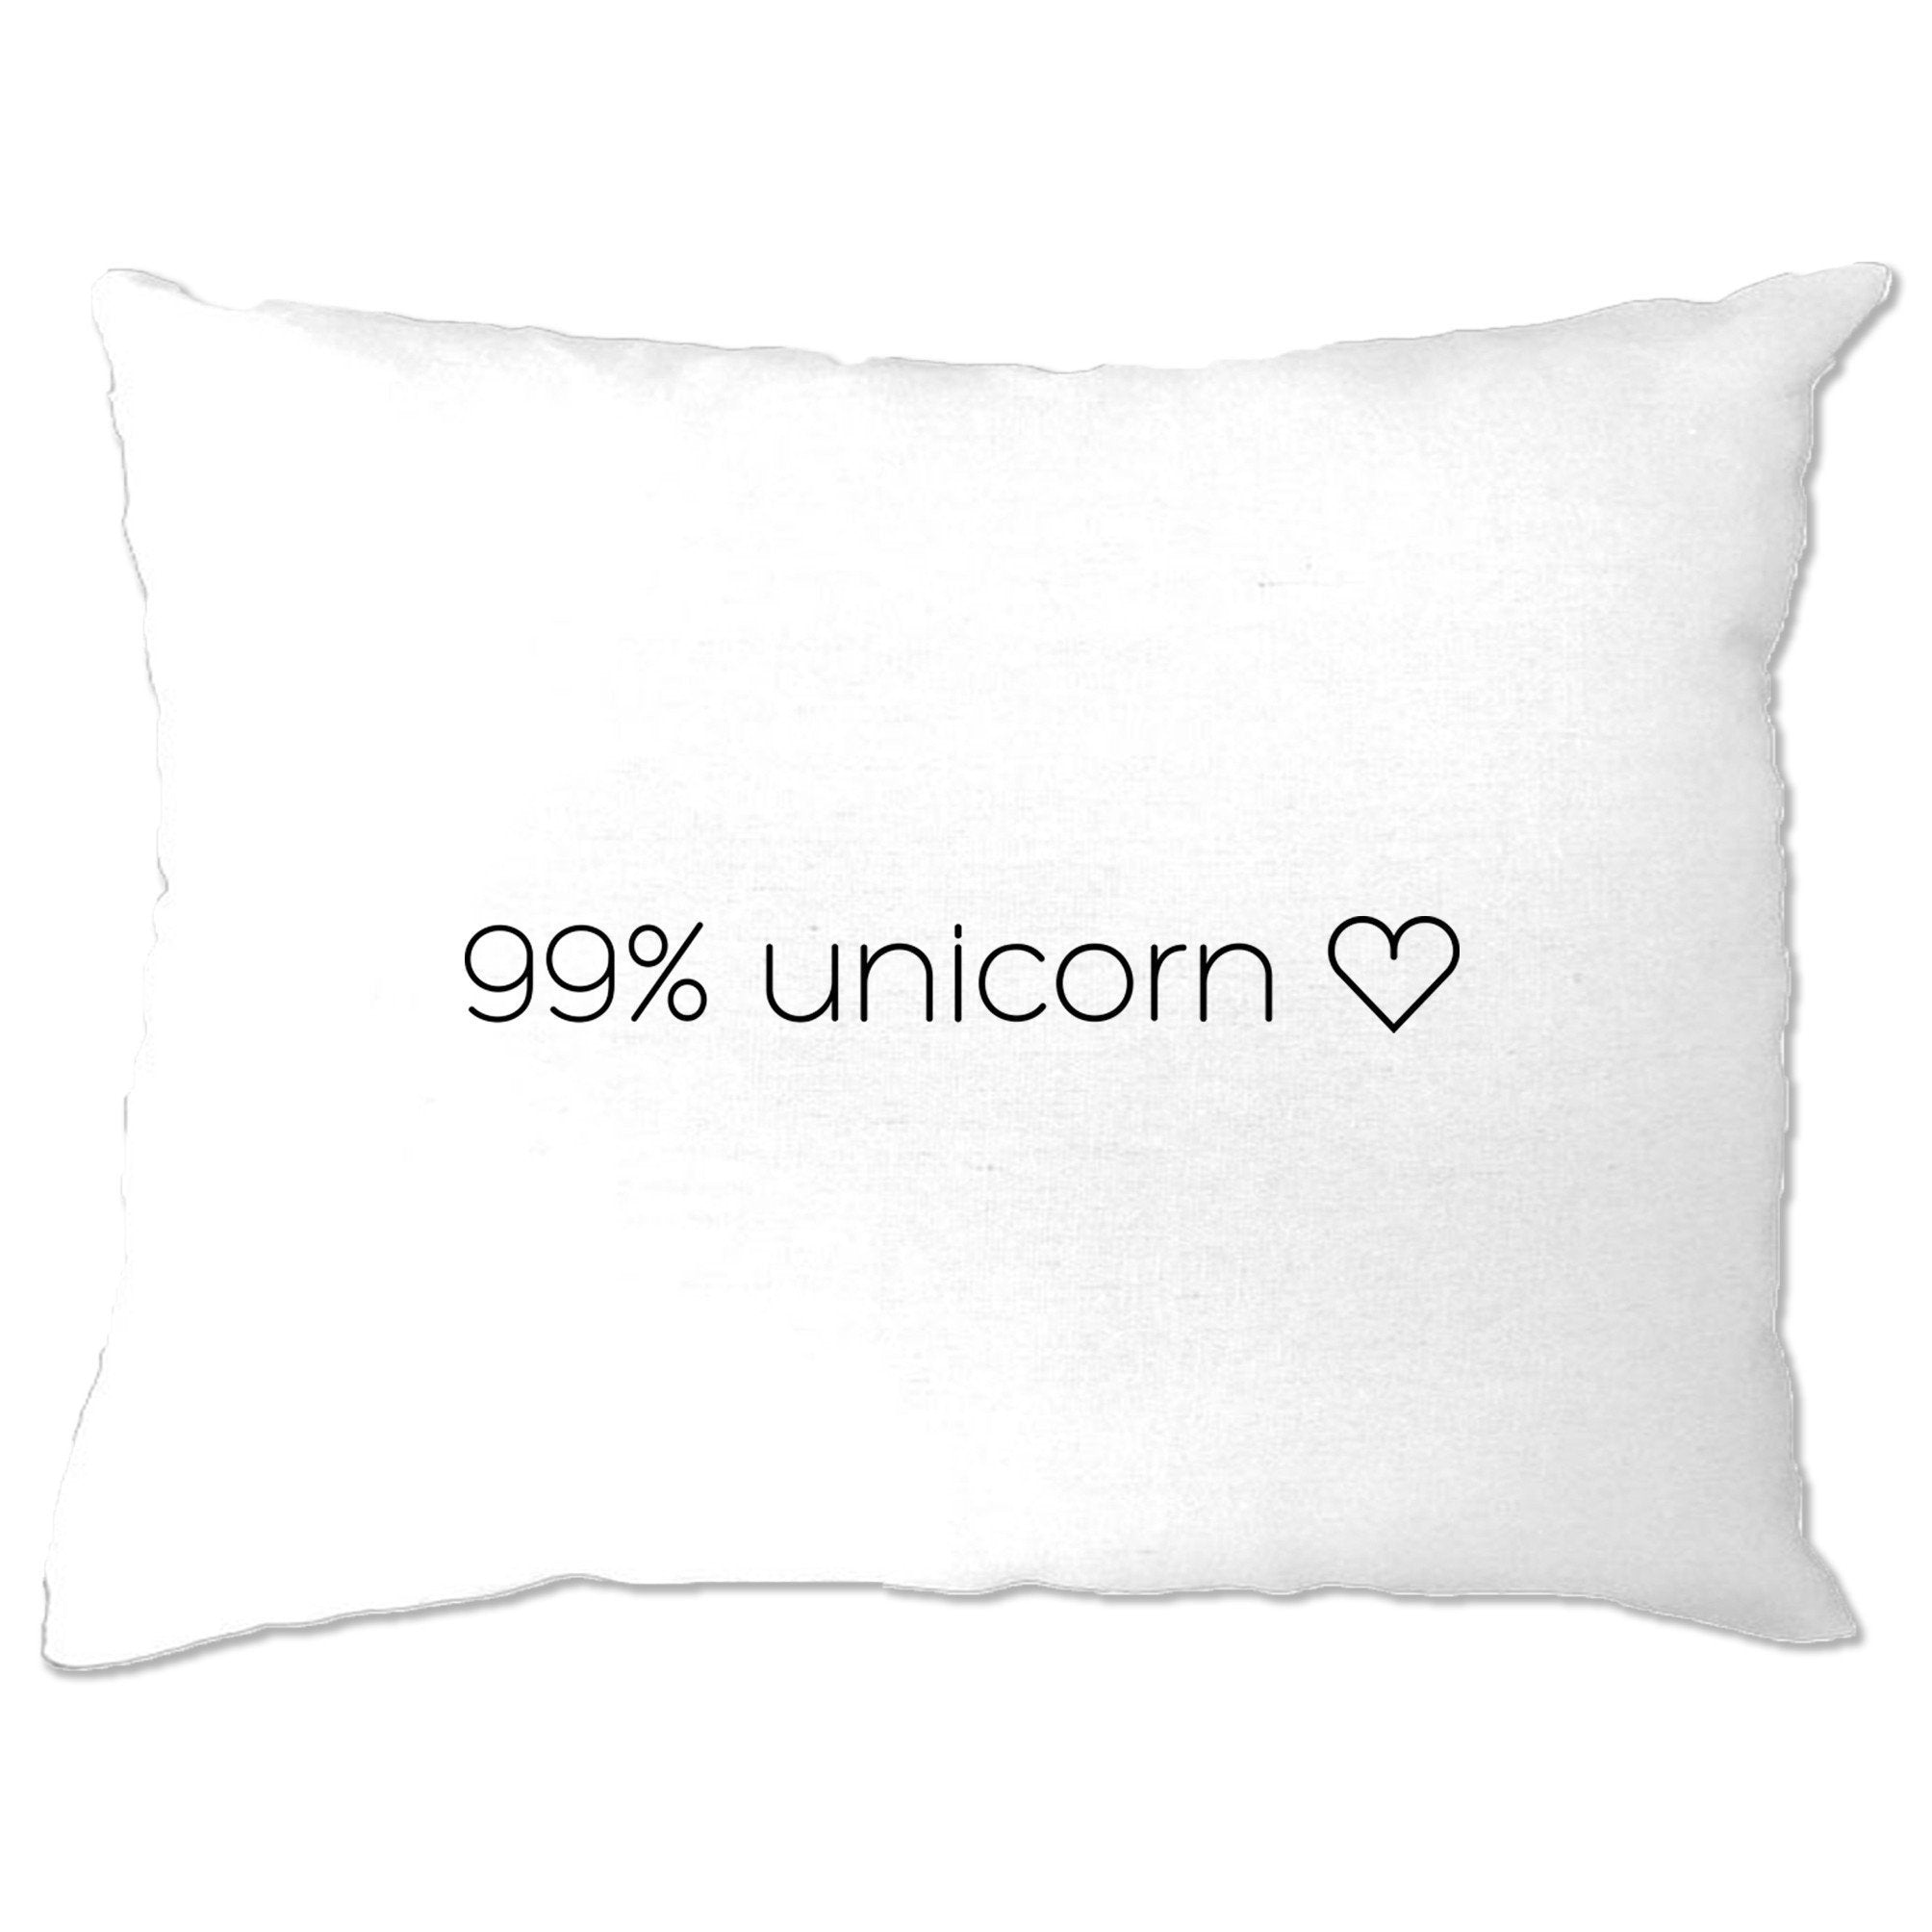 Novelty Mythical Pillow Case 99% Unicorn Heart Slogan